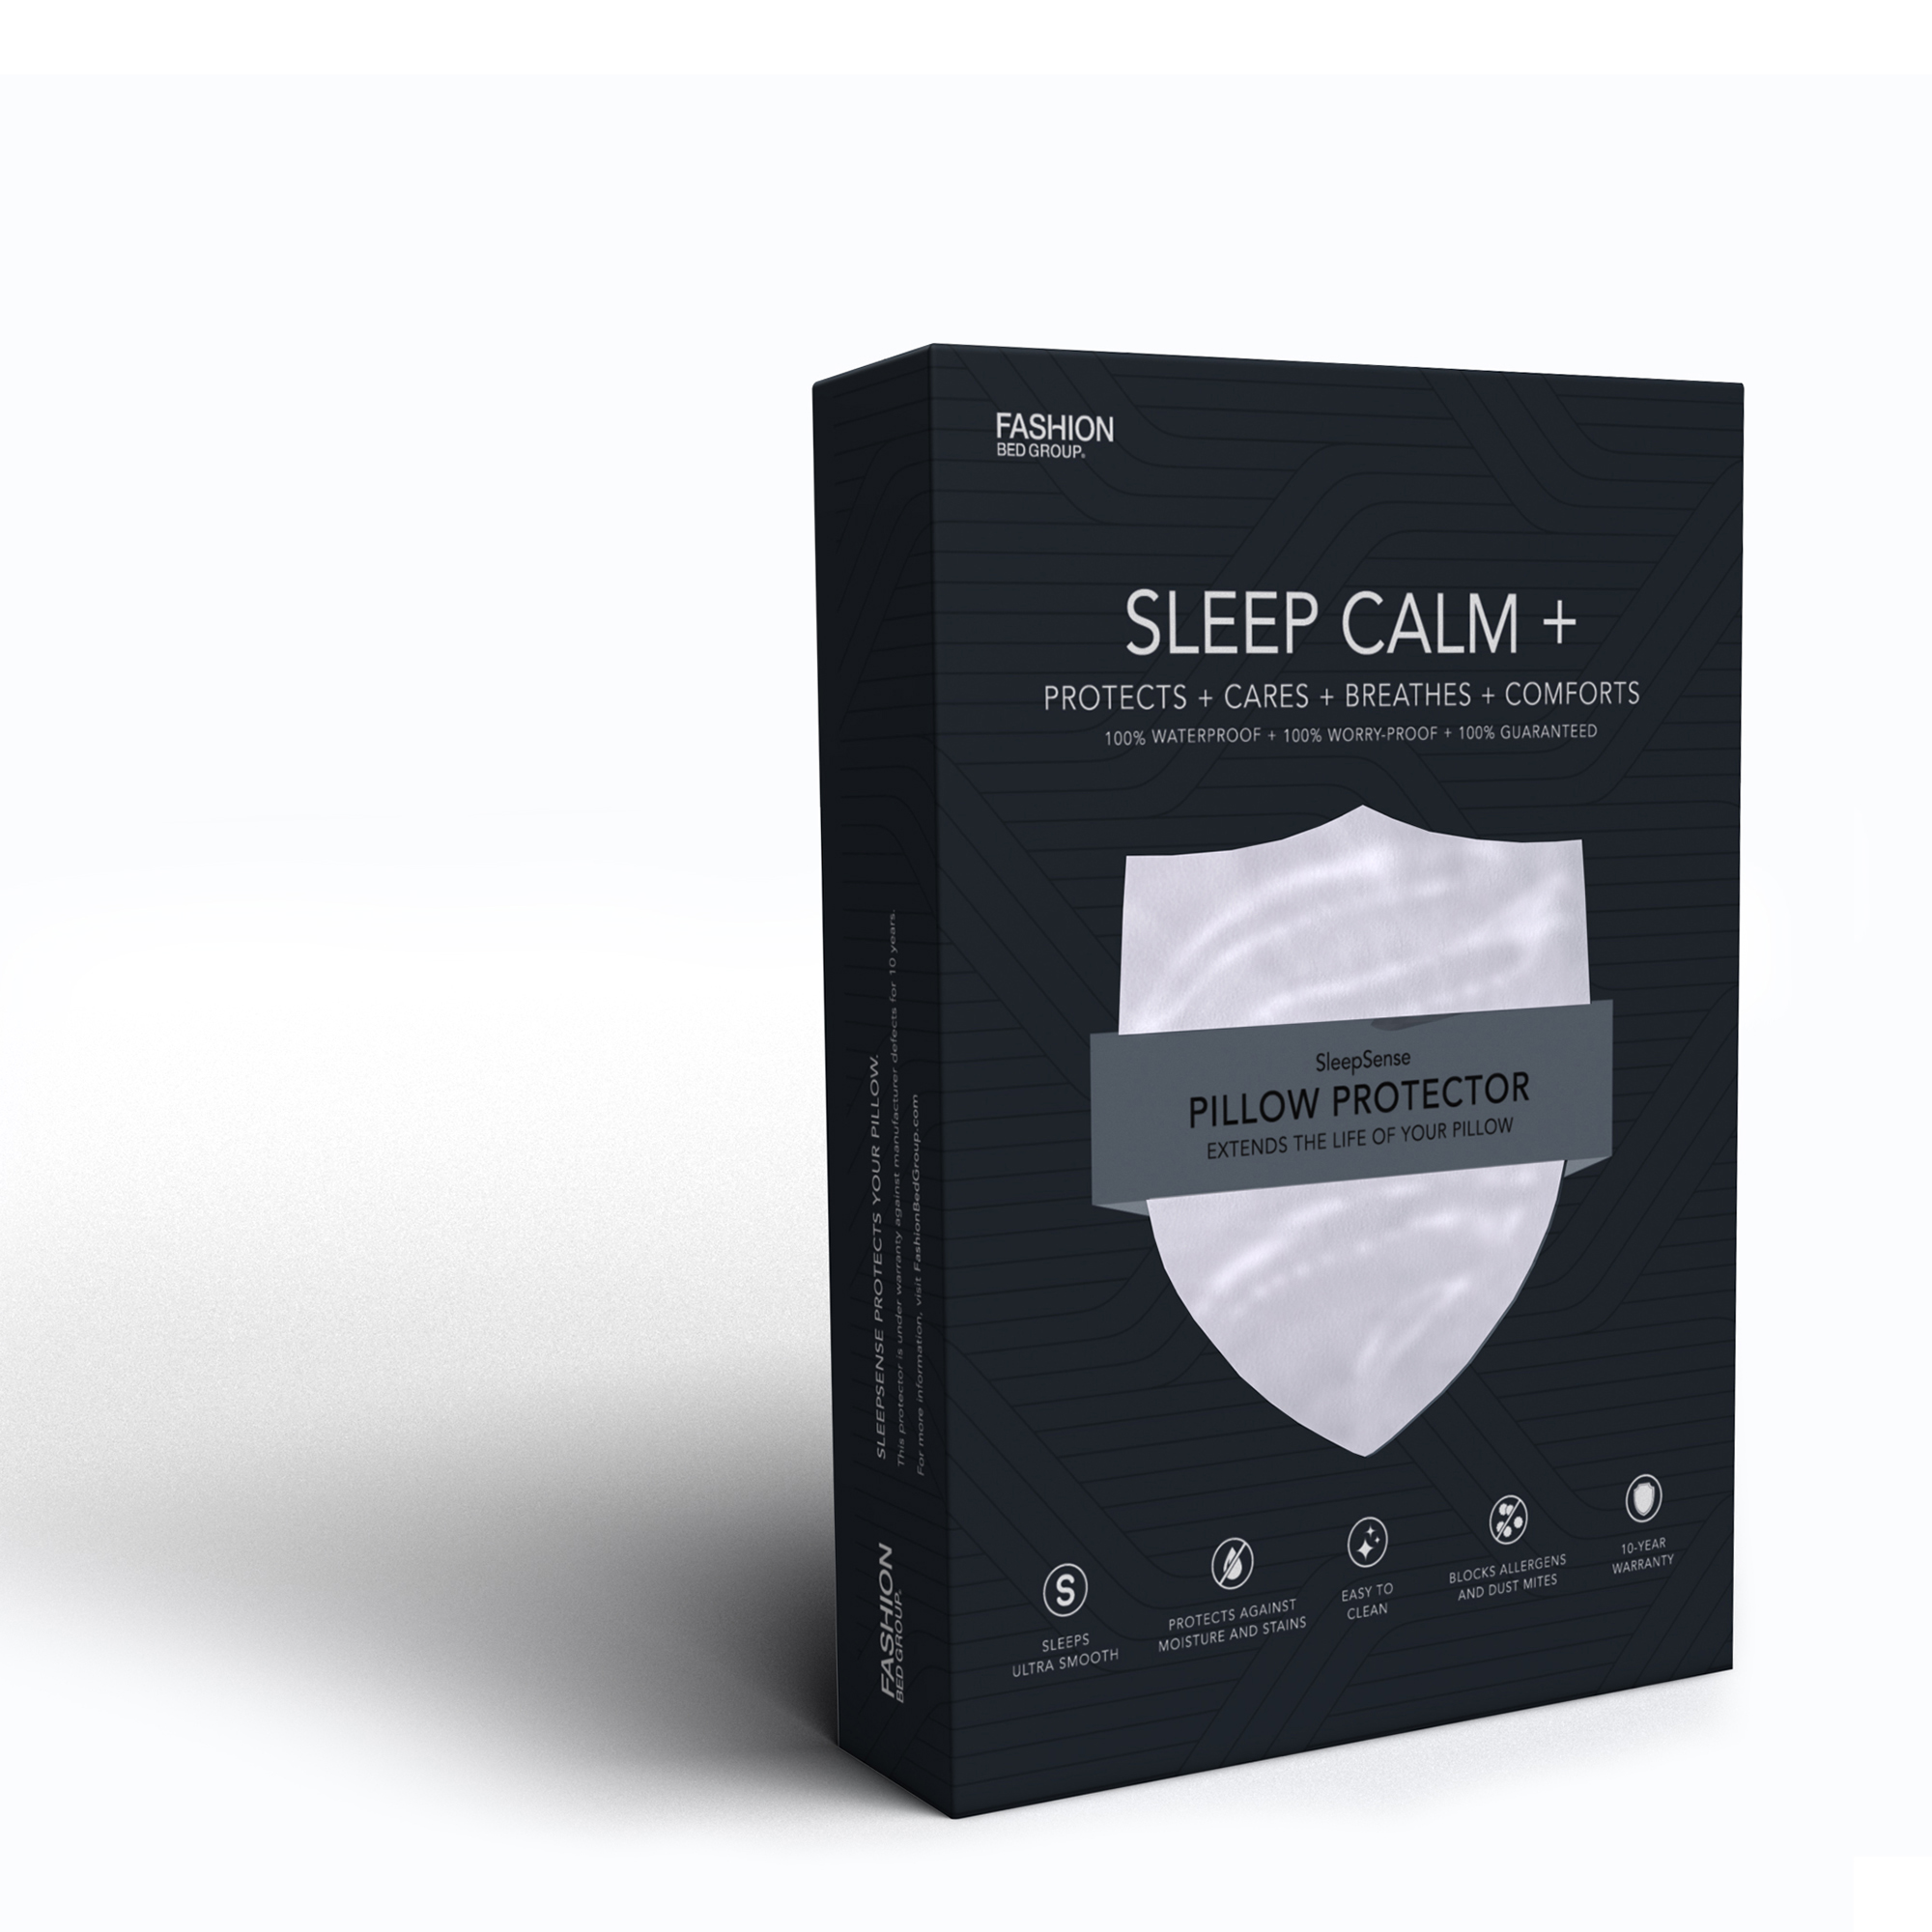 Sleep Calm + Ultra-Premium Pillow Protector with Moisture and Bacteria Resistant Crypton... by Fashion Bed Group